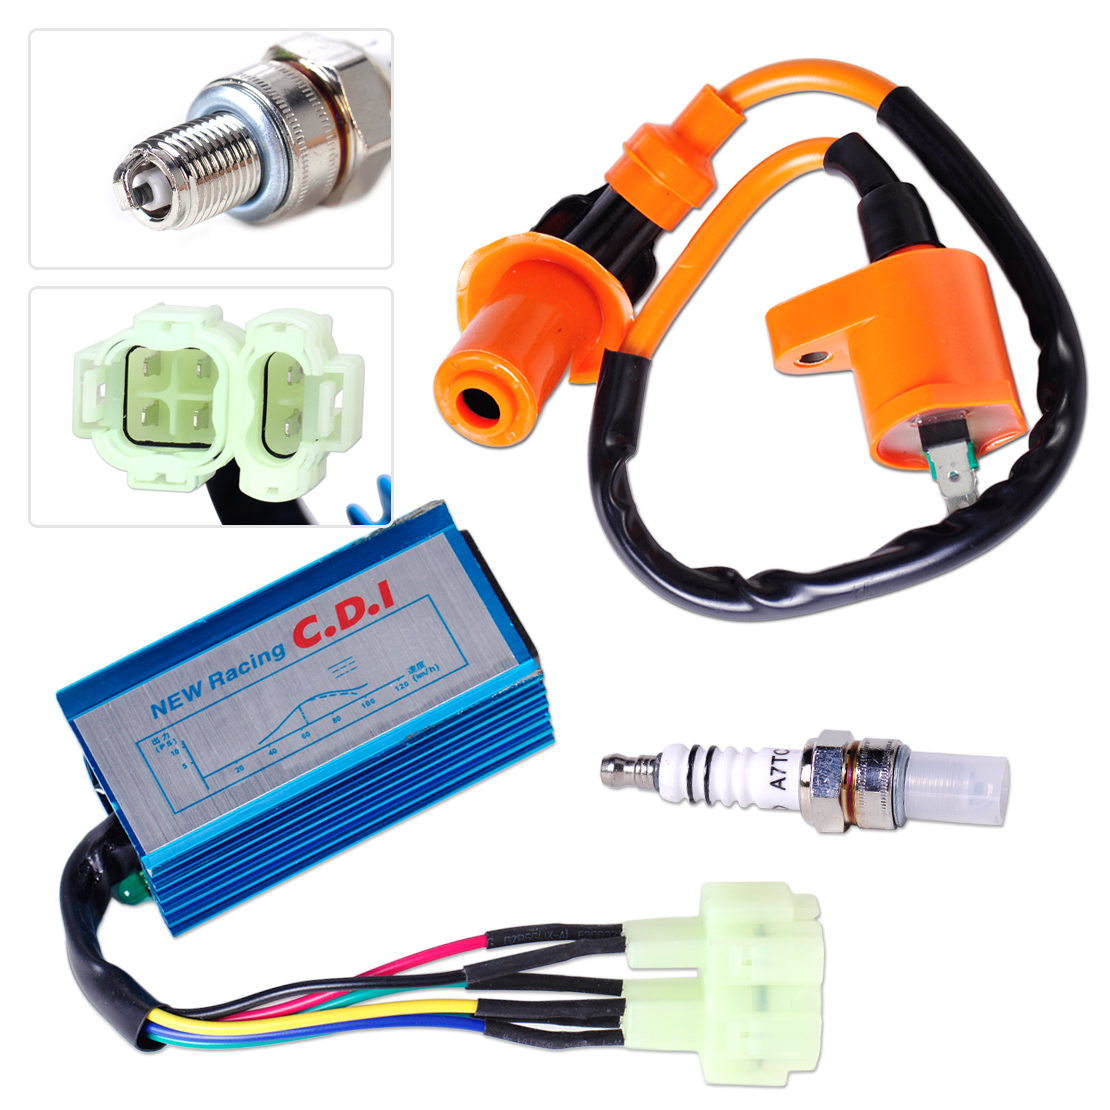 aliexpress com buy dwcx performance ignition coil spark plug wire cdi box for gy6 50cc 90cc 125cc 150cc scooter atv go kart moped dirt bike from  [ 1110 x 1110 Pixel ]